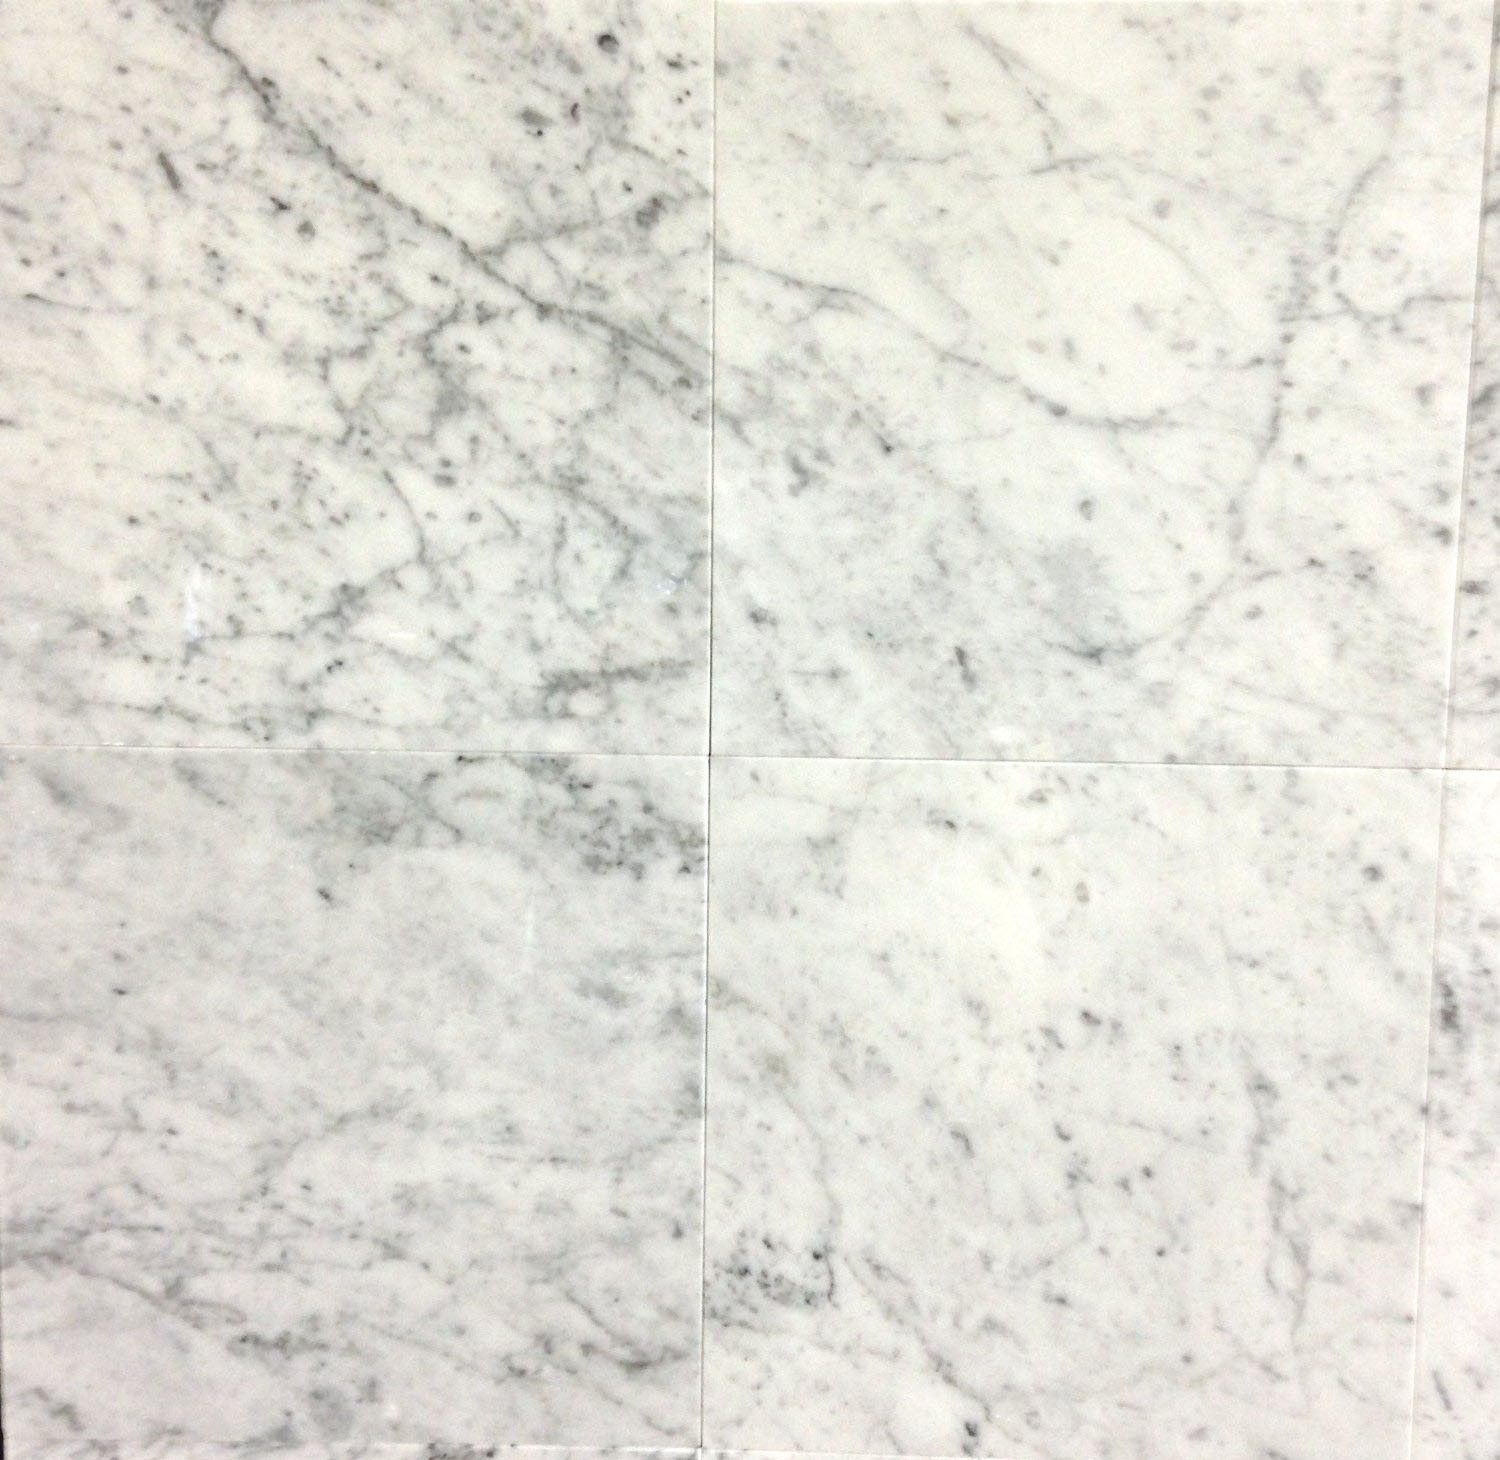 Bianco Carrara White Carrera Polished Marble 12 X 12 Tile Granite Tile Tile Floor Marble Polishing